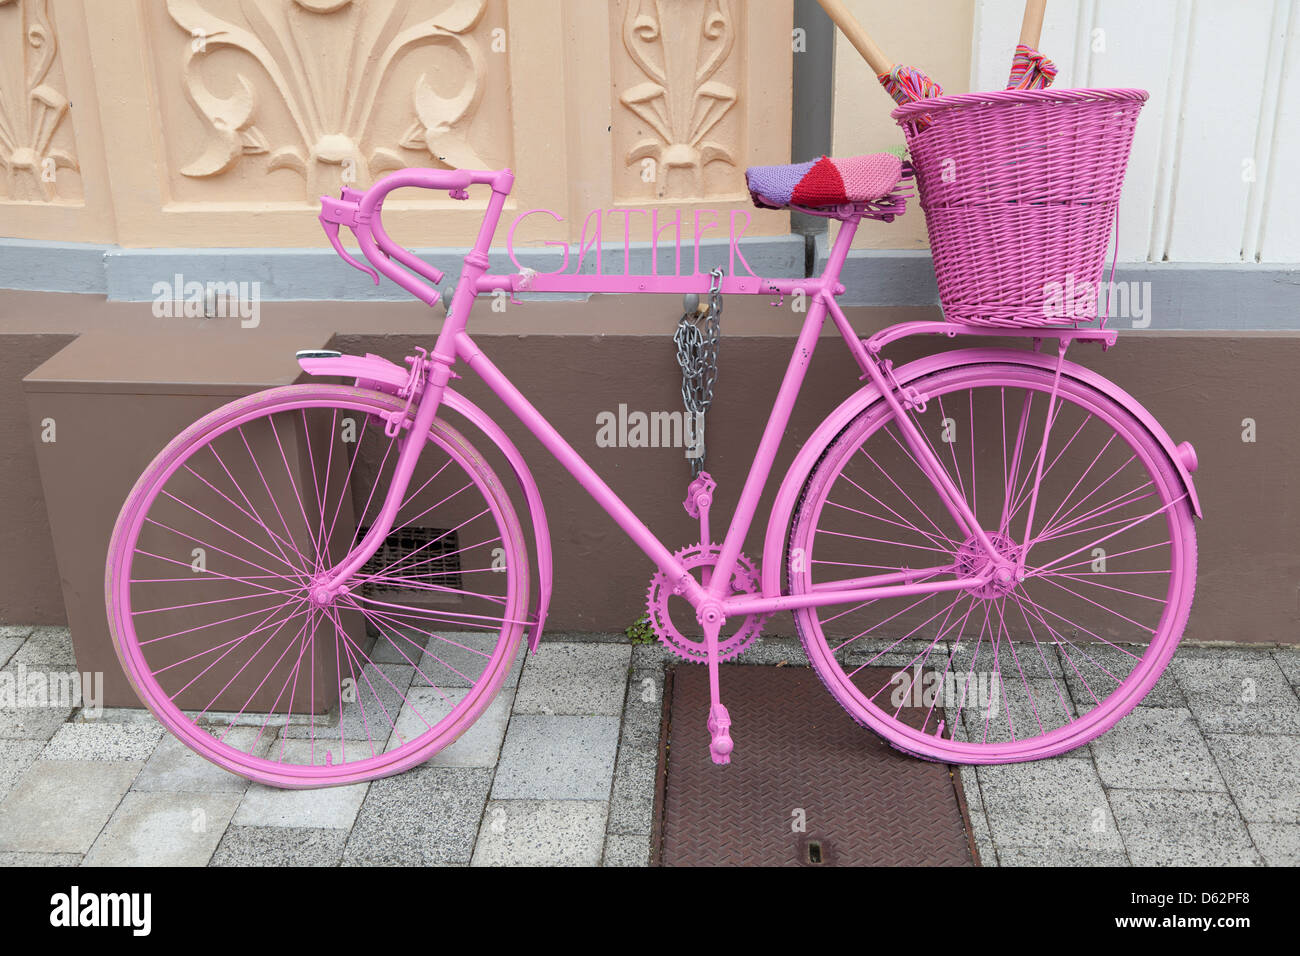 Pink painted bike as an advertisement in Napier, New Zealand - Stock Image